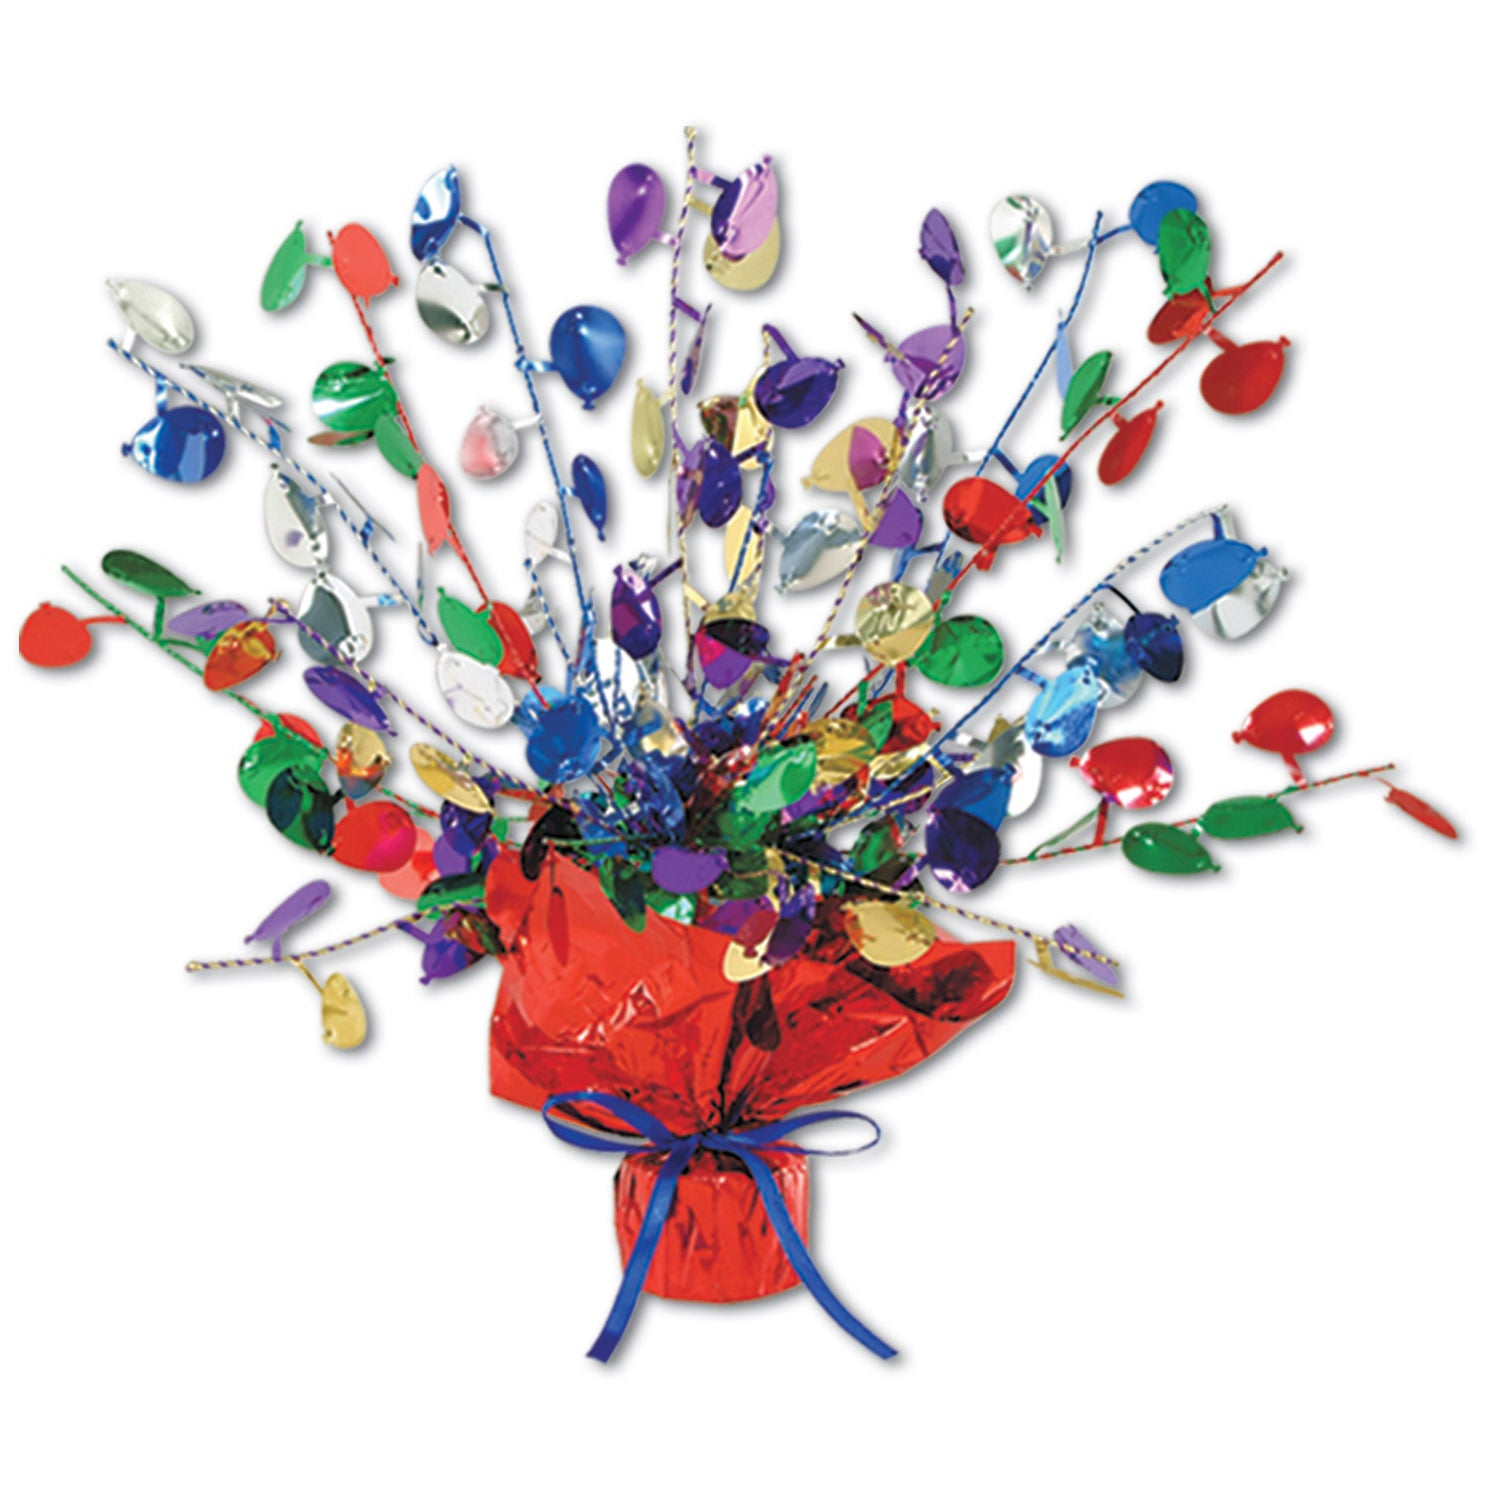 Balloon Gleam 'N Burst Centerpiece by Beistle - Birthday Party Supplies Decorations